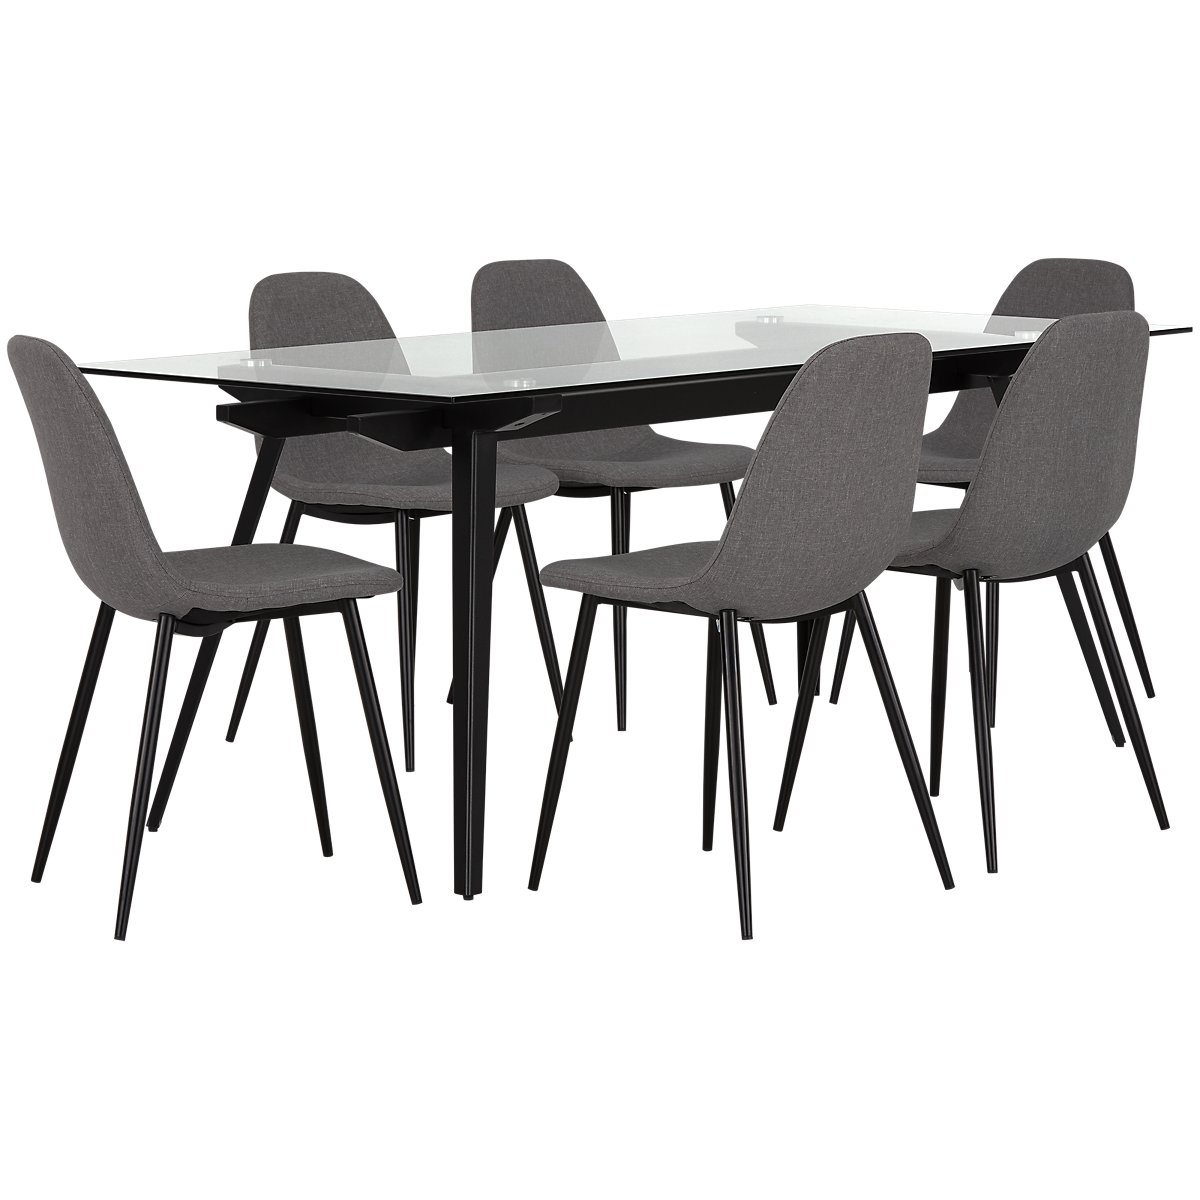 Miles Gray Glass Table & 4 Upholstered Chairs